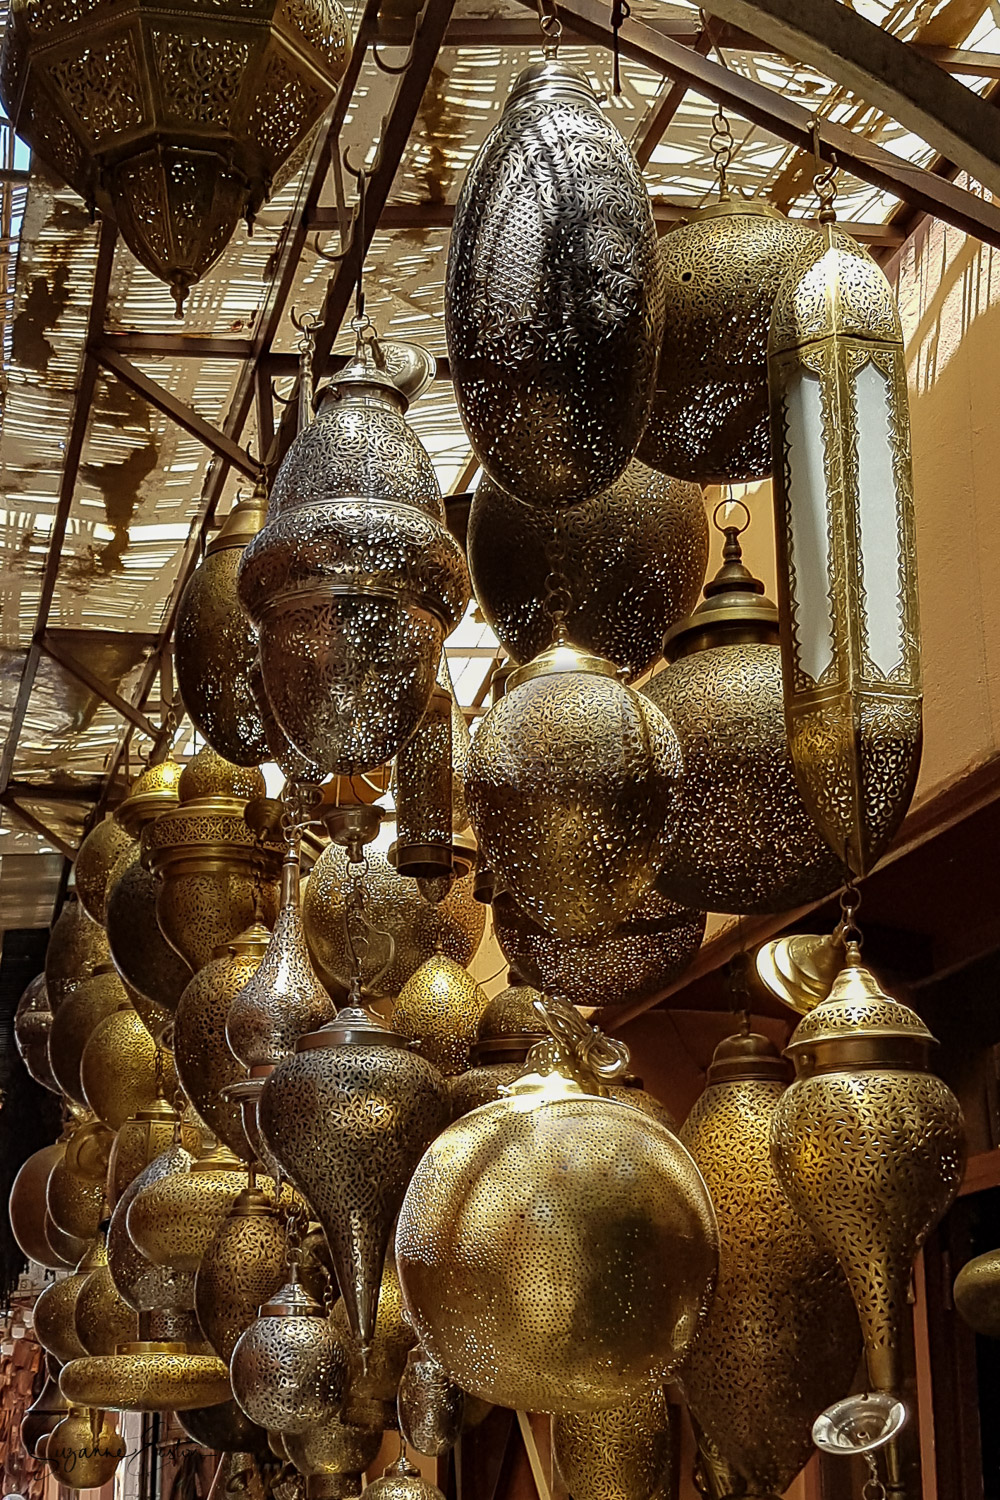 A shop full of copper lanterns in a Marrakech souk. Intricate patterns are carved into the golden copper to allow the light to escape and dance across walls and ceilings.